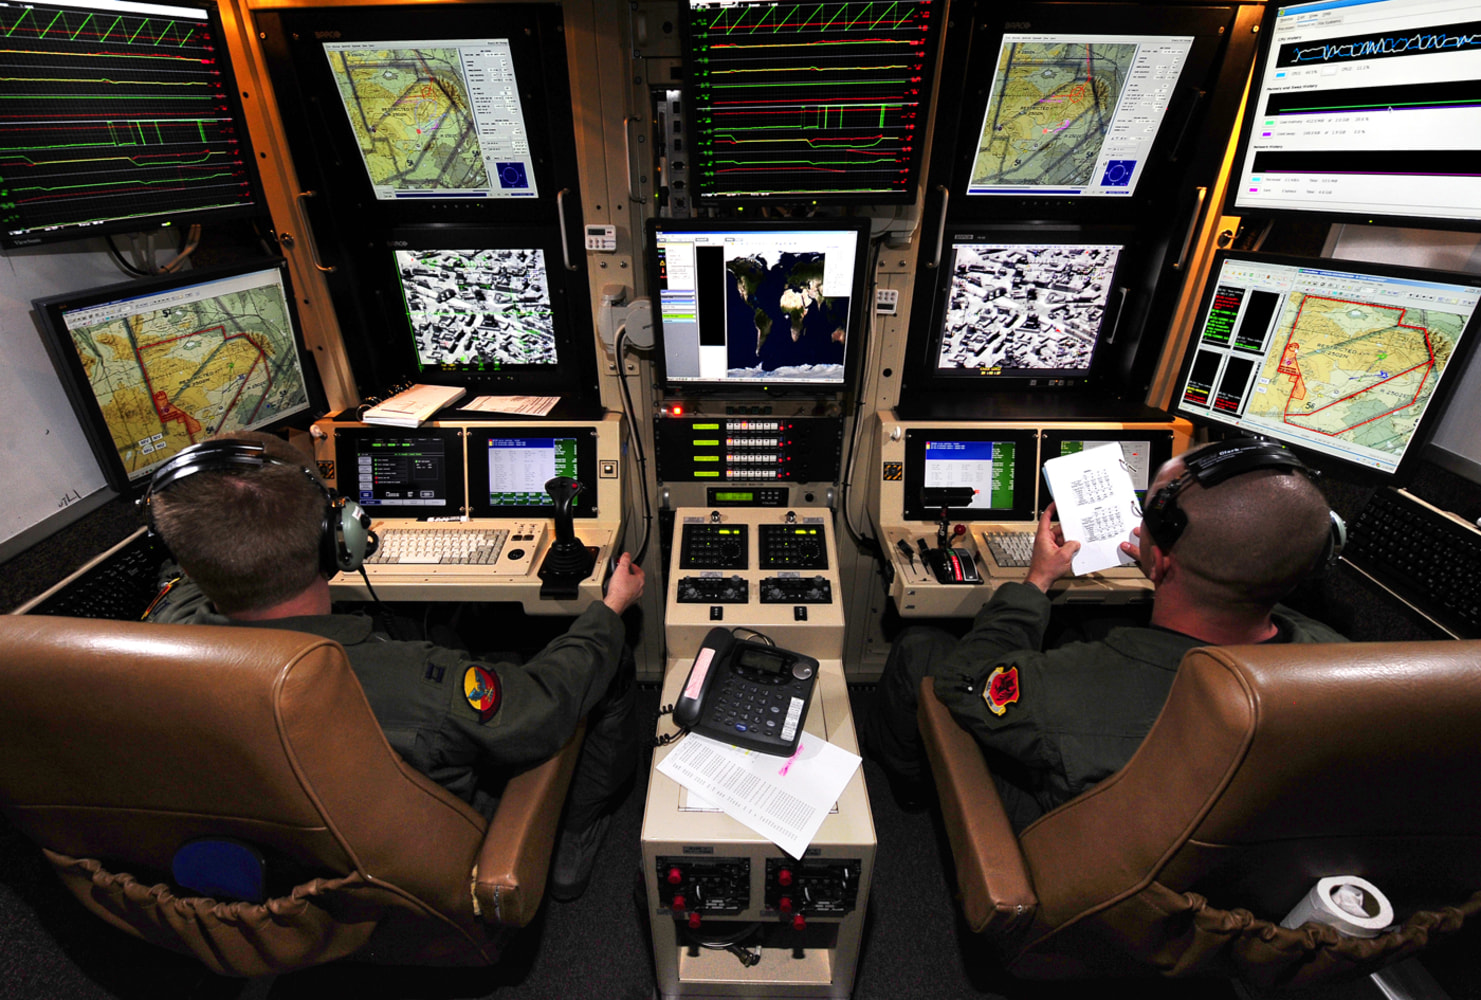 Air Force wants drone pilots, but incentives lacking, says report ...